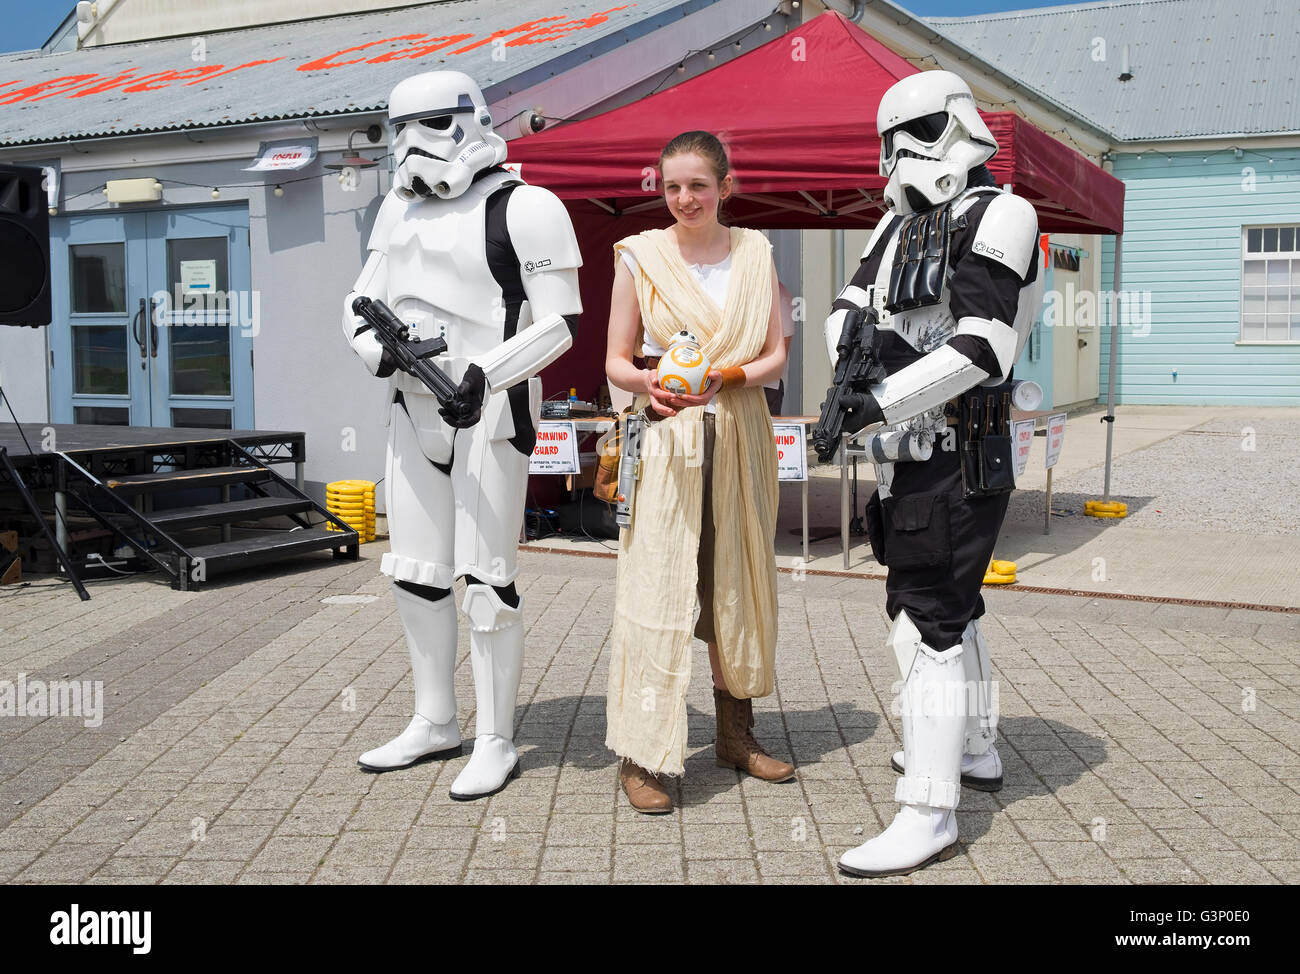 Star Wars characters at a cosplay event - Stock Image